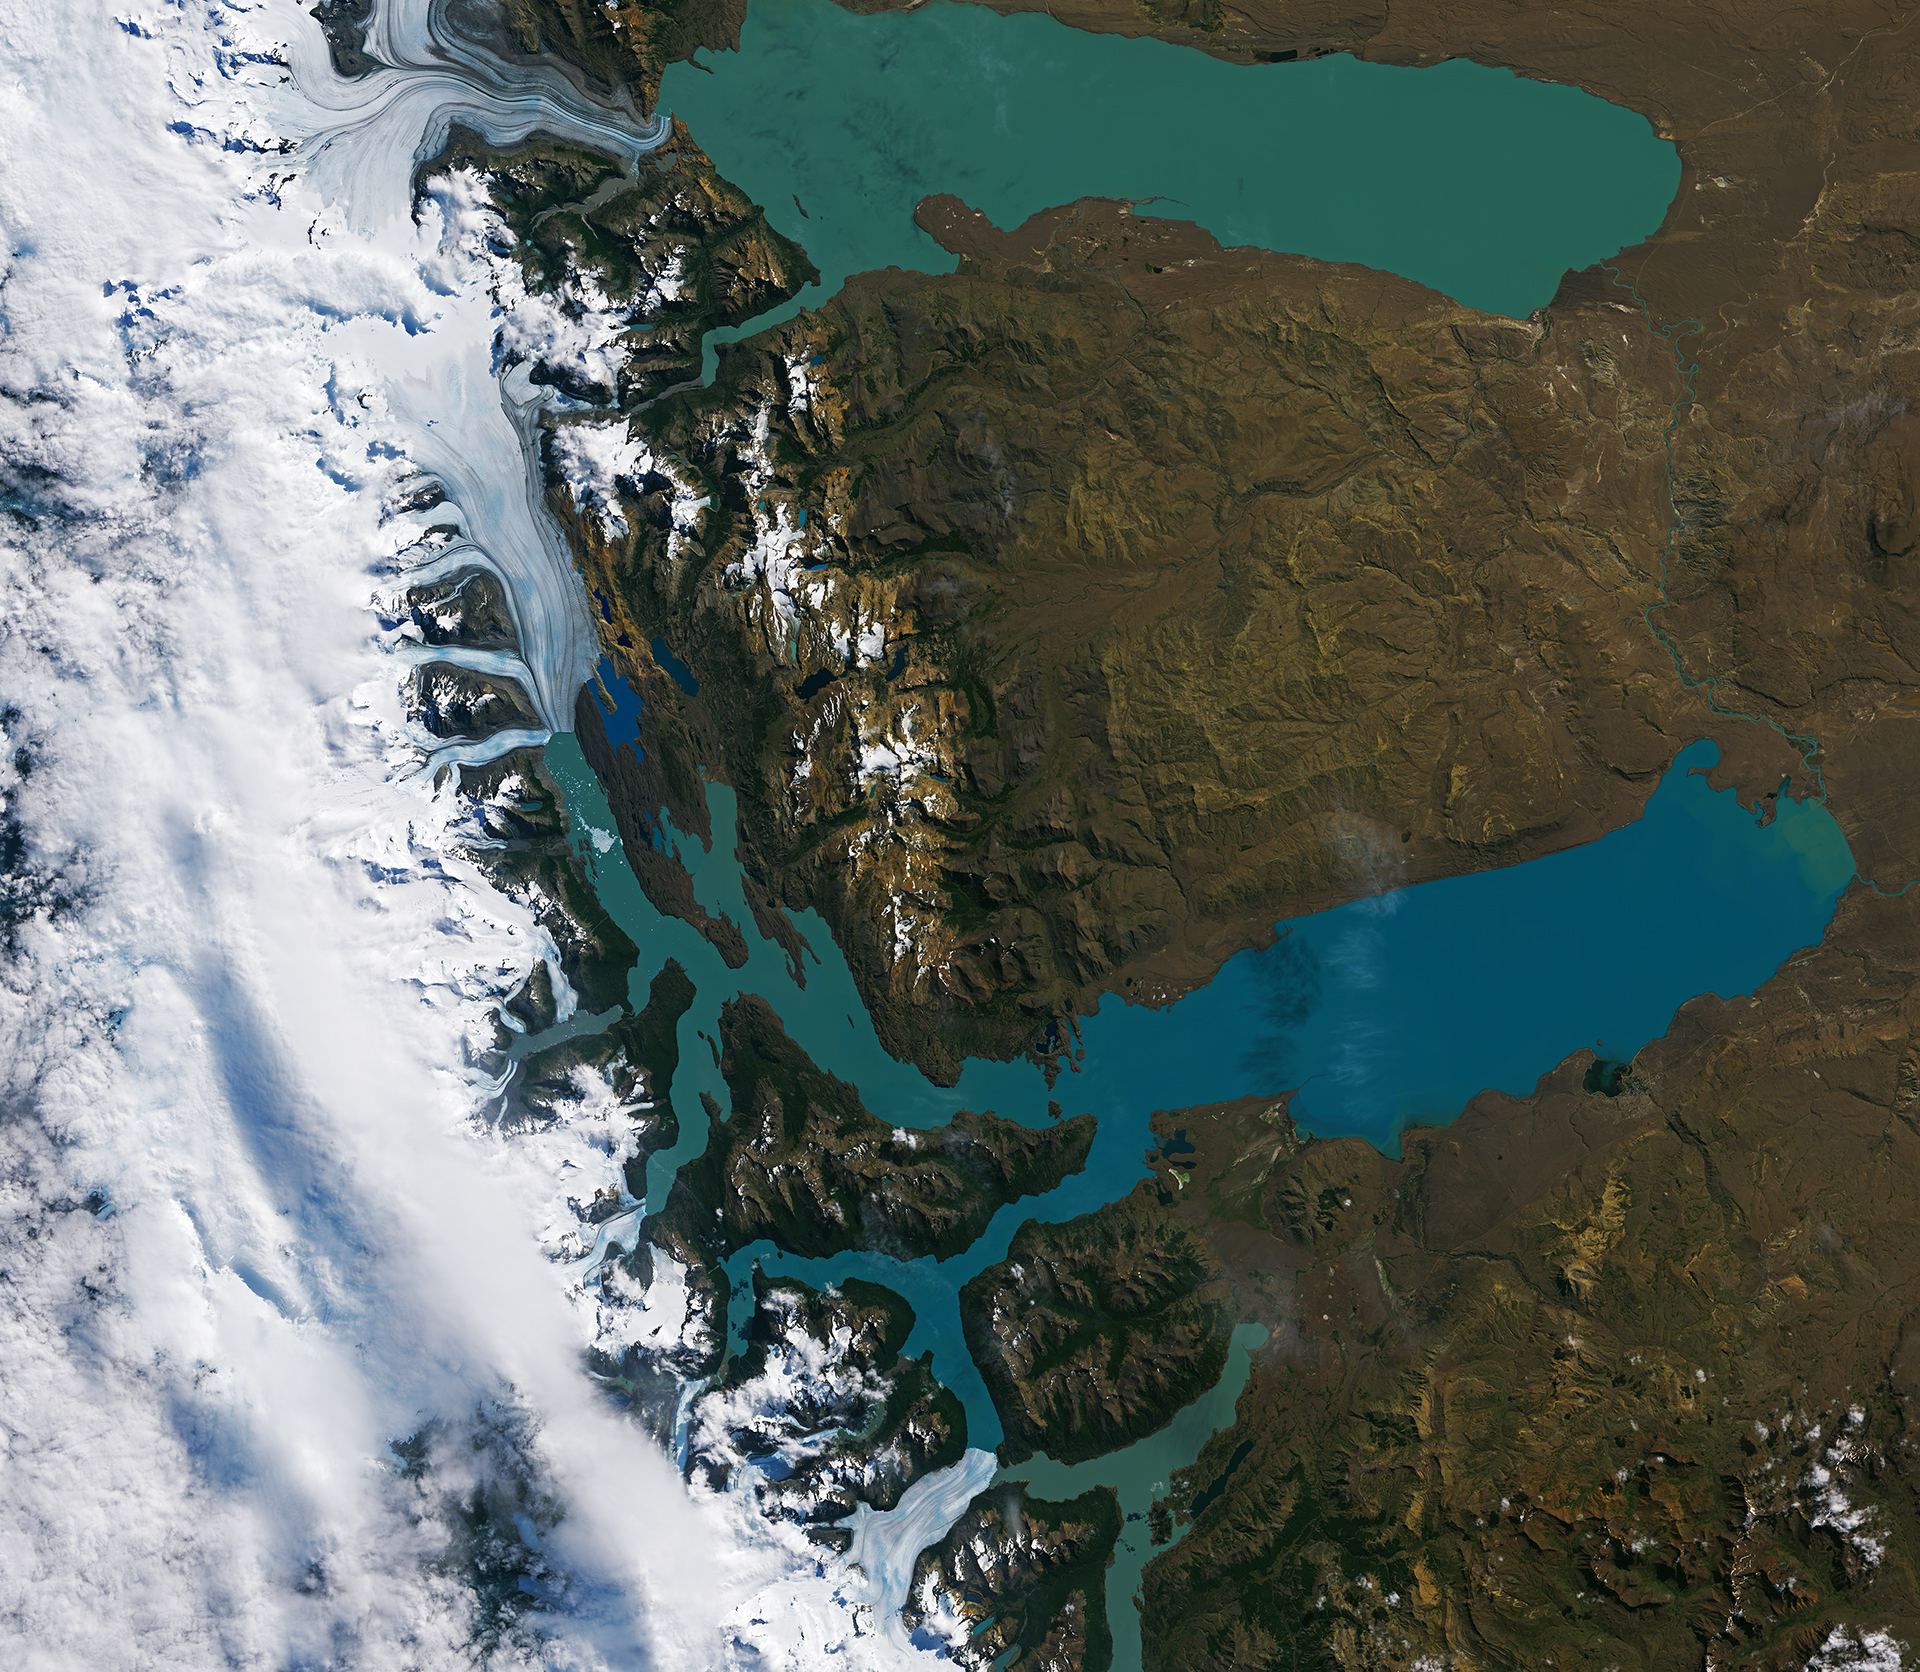 Space in Images - 2015 - 04 - Los Glaciares National Park ...